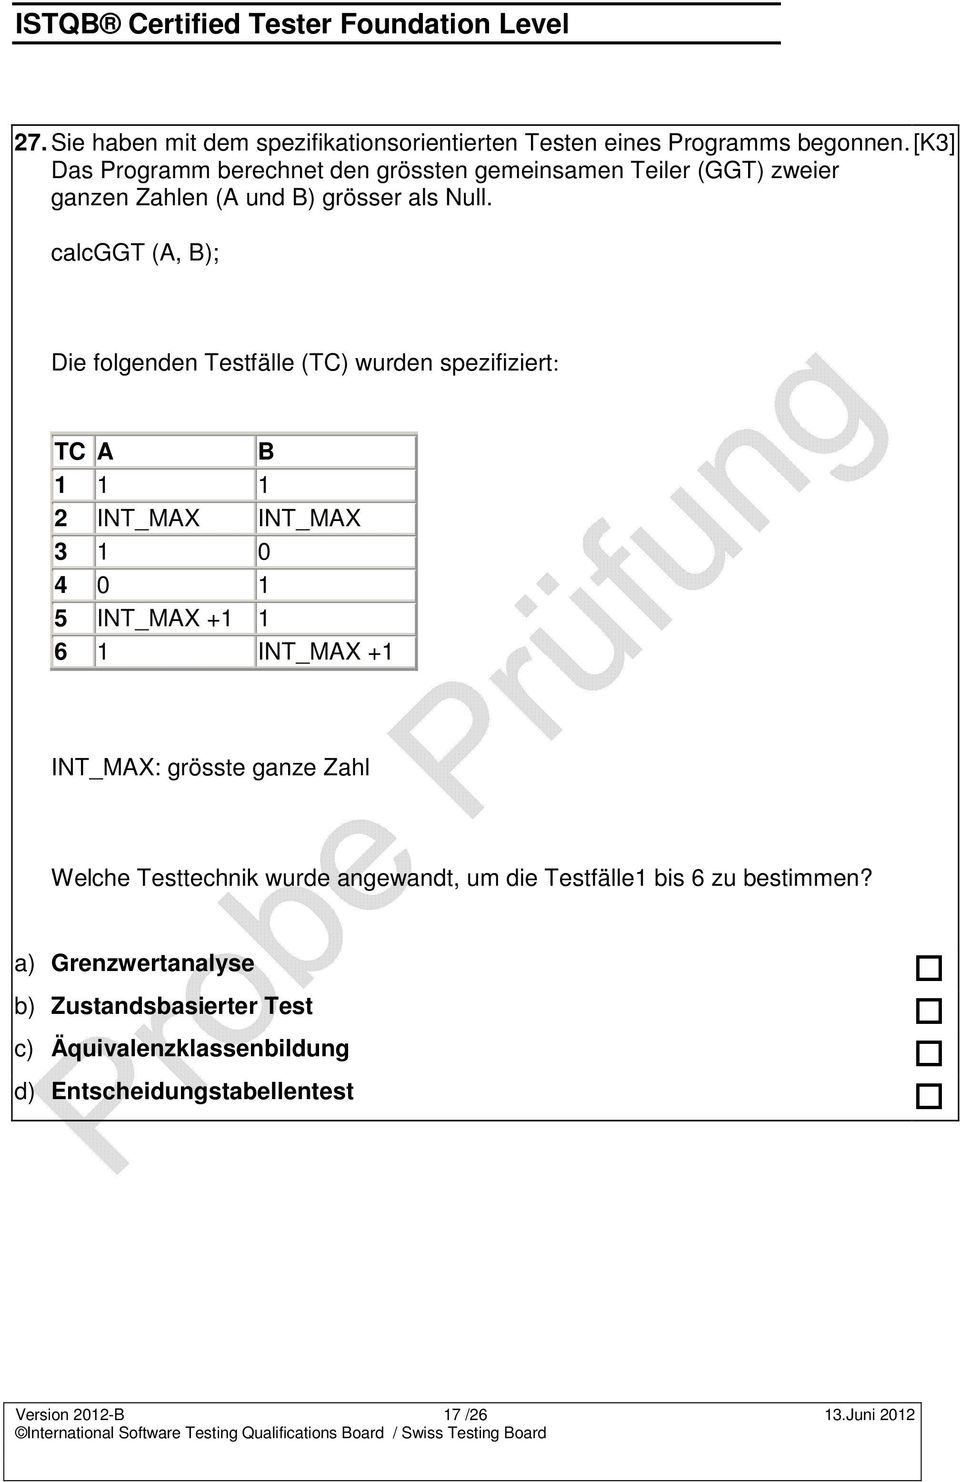 calcggt (A, B); [K3] Die folgenden Testfälle (TC) wurden spezifiziert: TC A B 1 1 1 2 INT_MAX INT_MAX 3 1 0 4 0 1 5 INT_MAX +1 1 6 1 INT_MAX +1